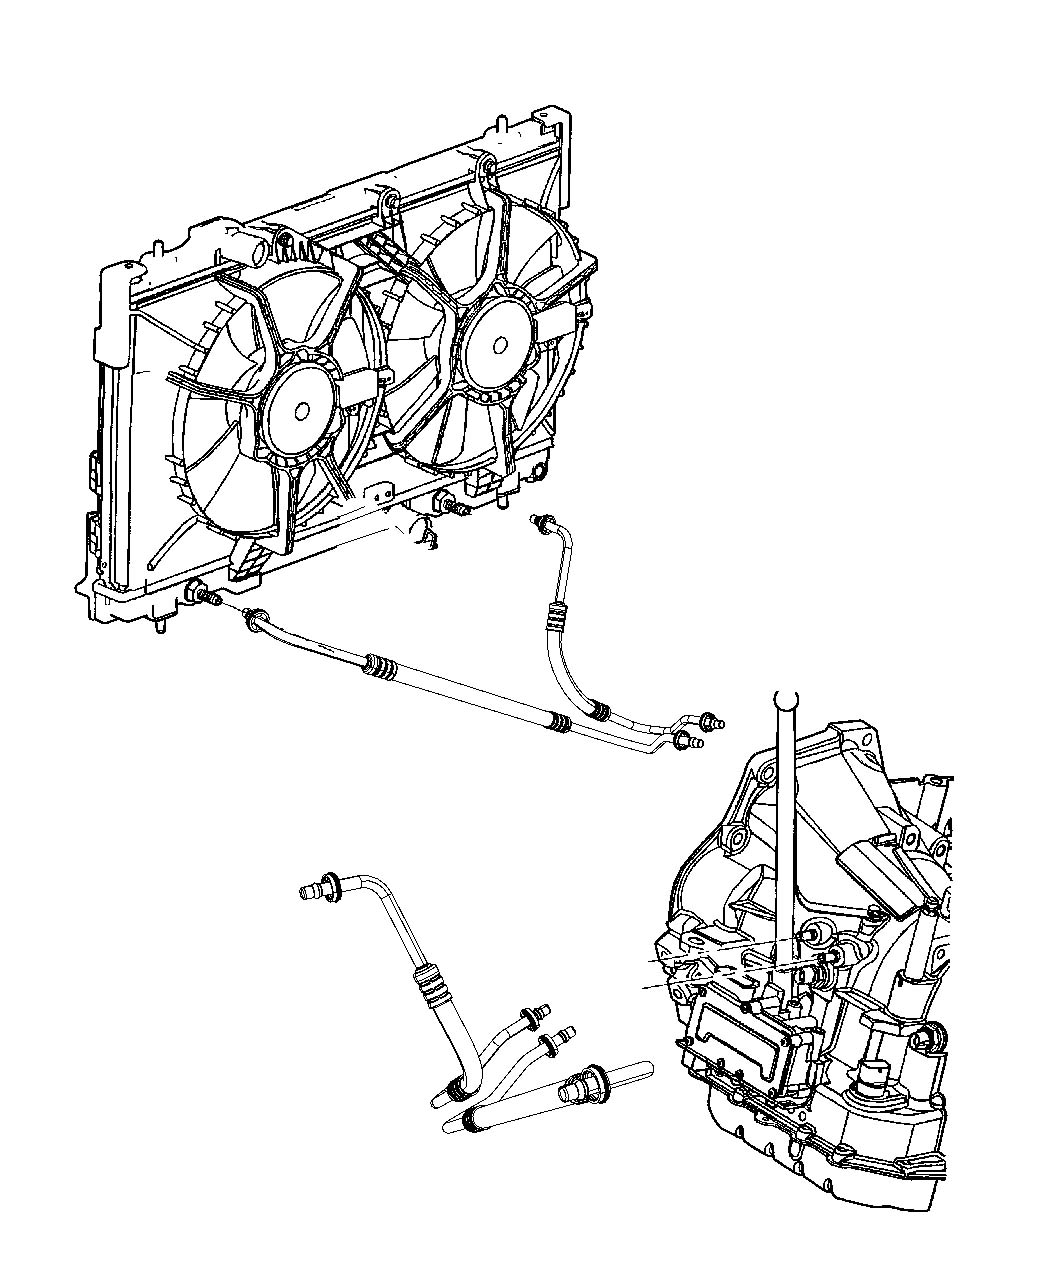 Diagram For Dodge Neon Radiator